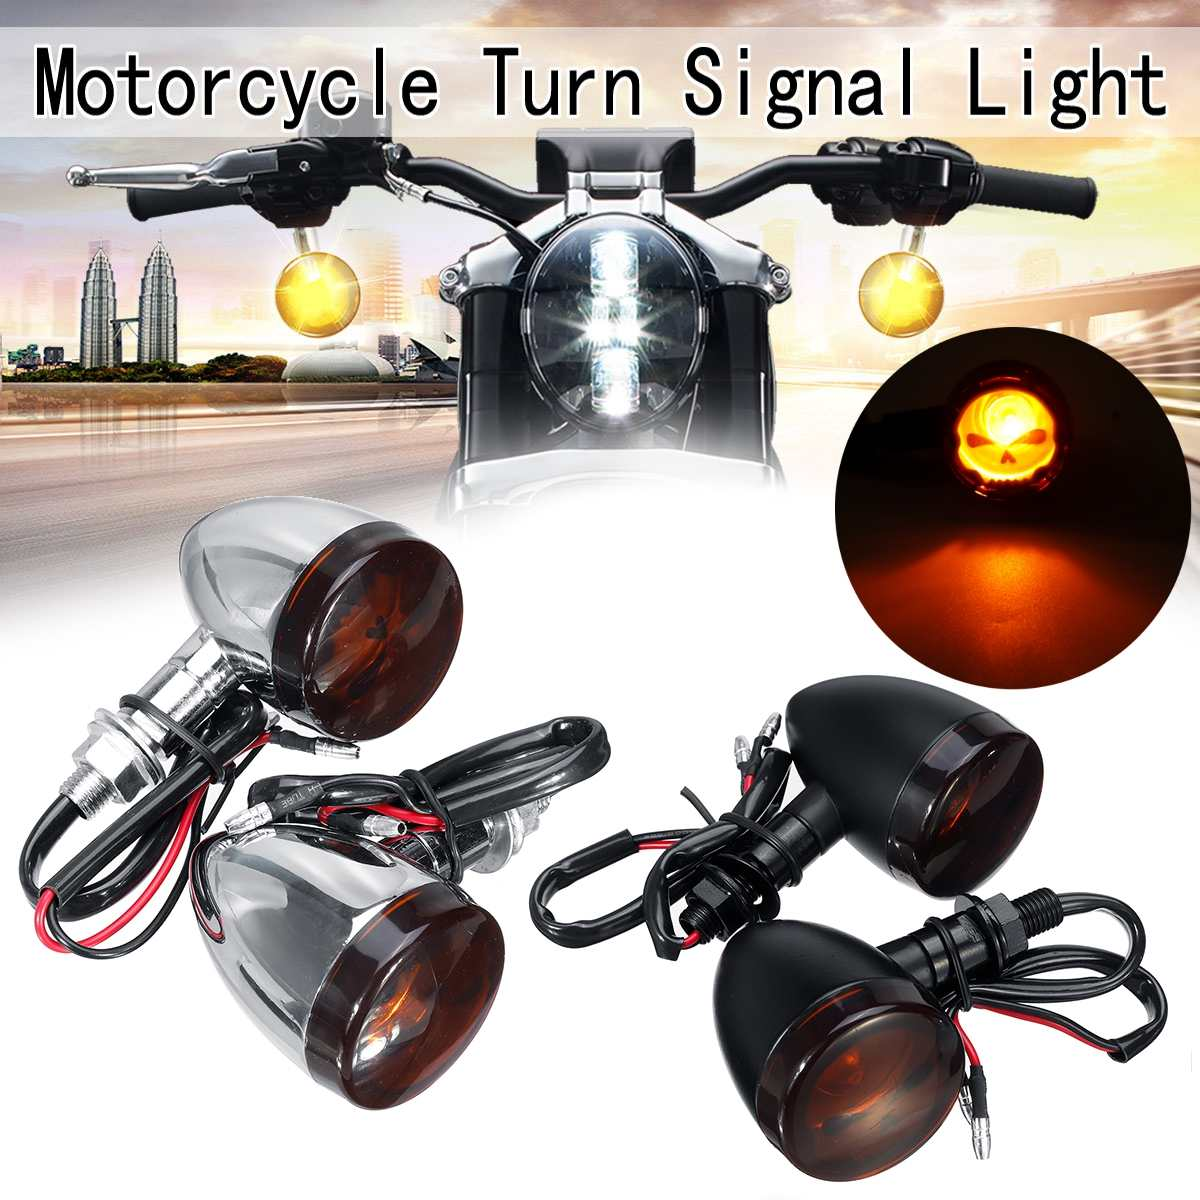 12V Motorcycle Turn Signal LightS Indicator Amber Lamp For Honda Suzuki Kawasaki Yamaha Cruiser Chopper Sport Bike